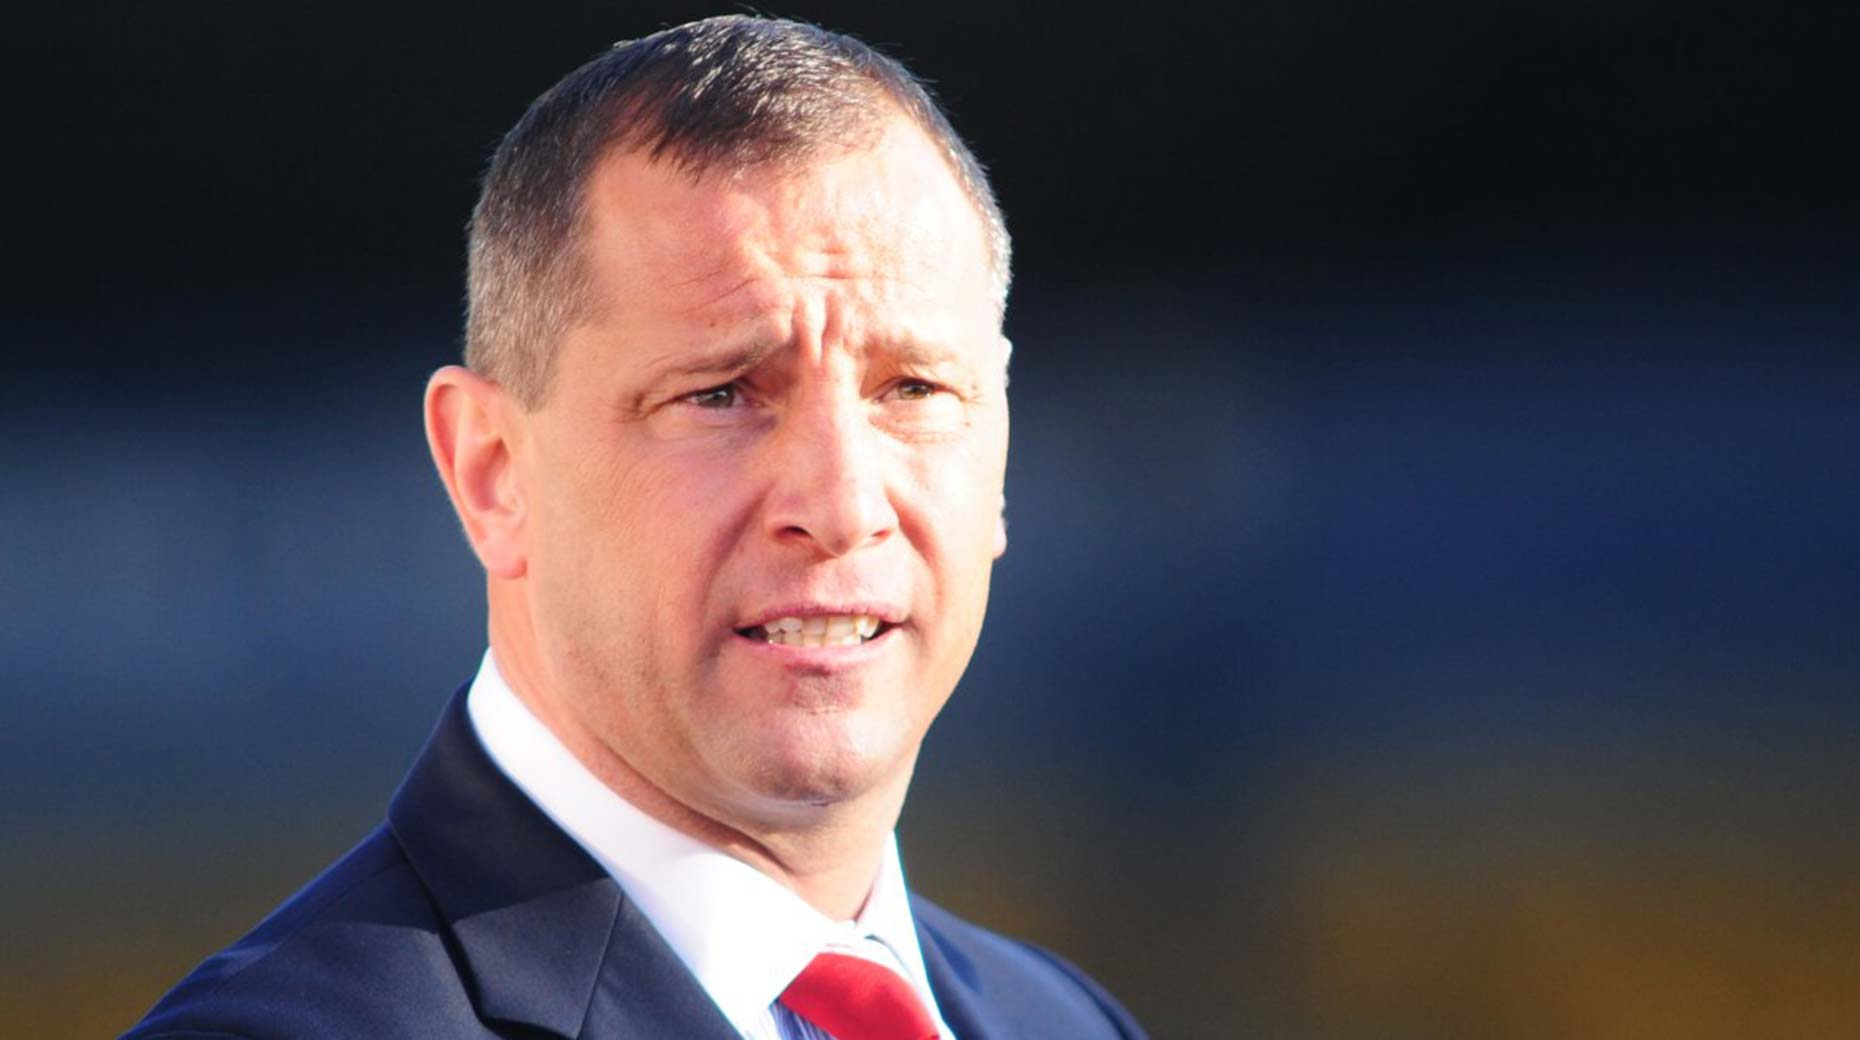 David Holdsworth was the 33rd Imps manager. Photo: Lincoln City FC